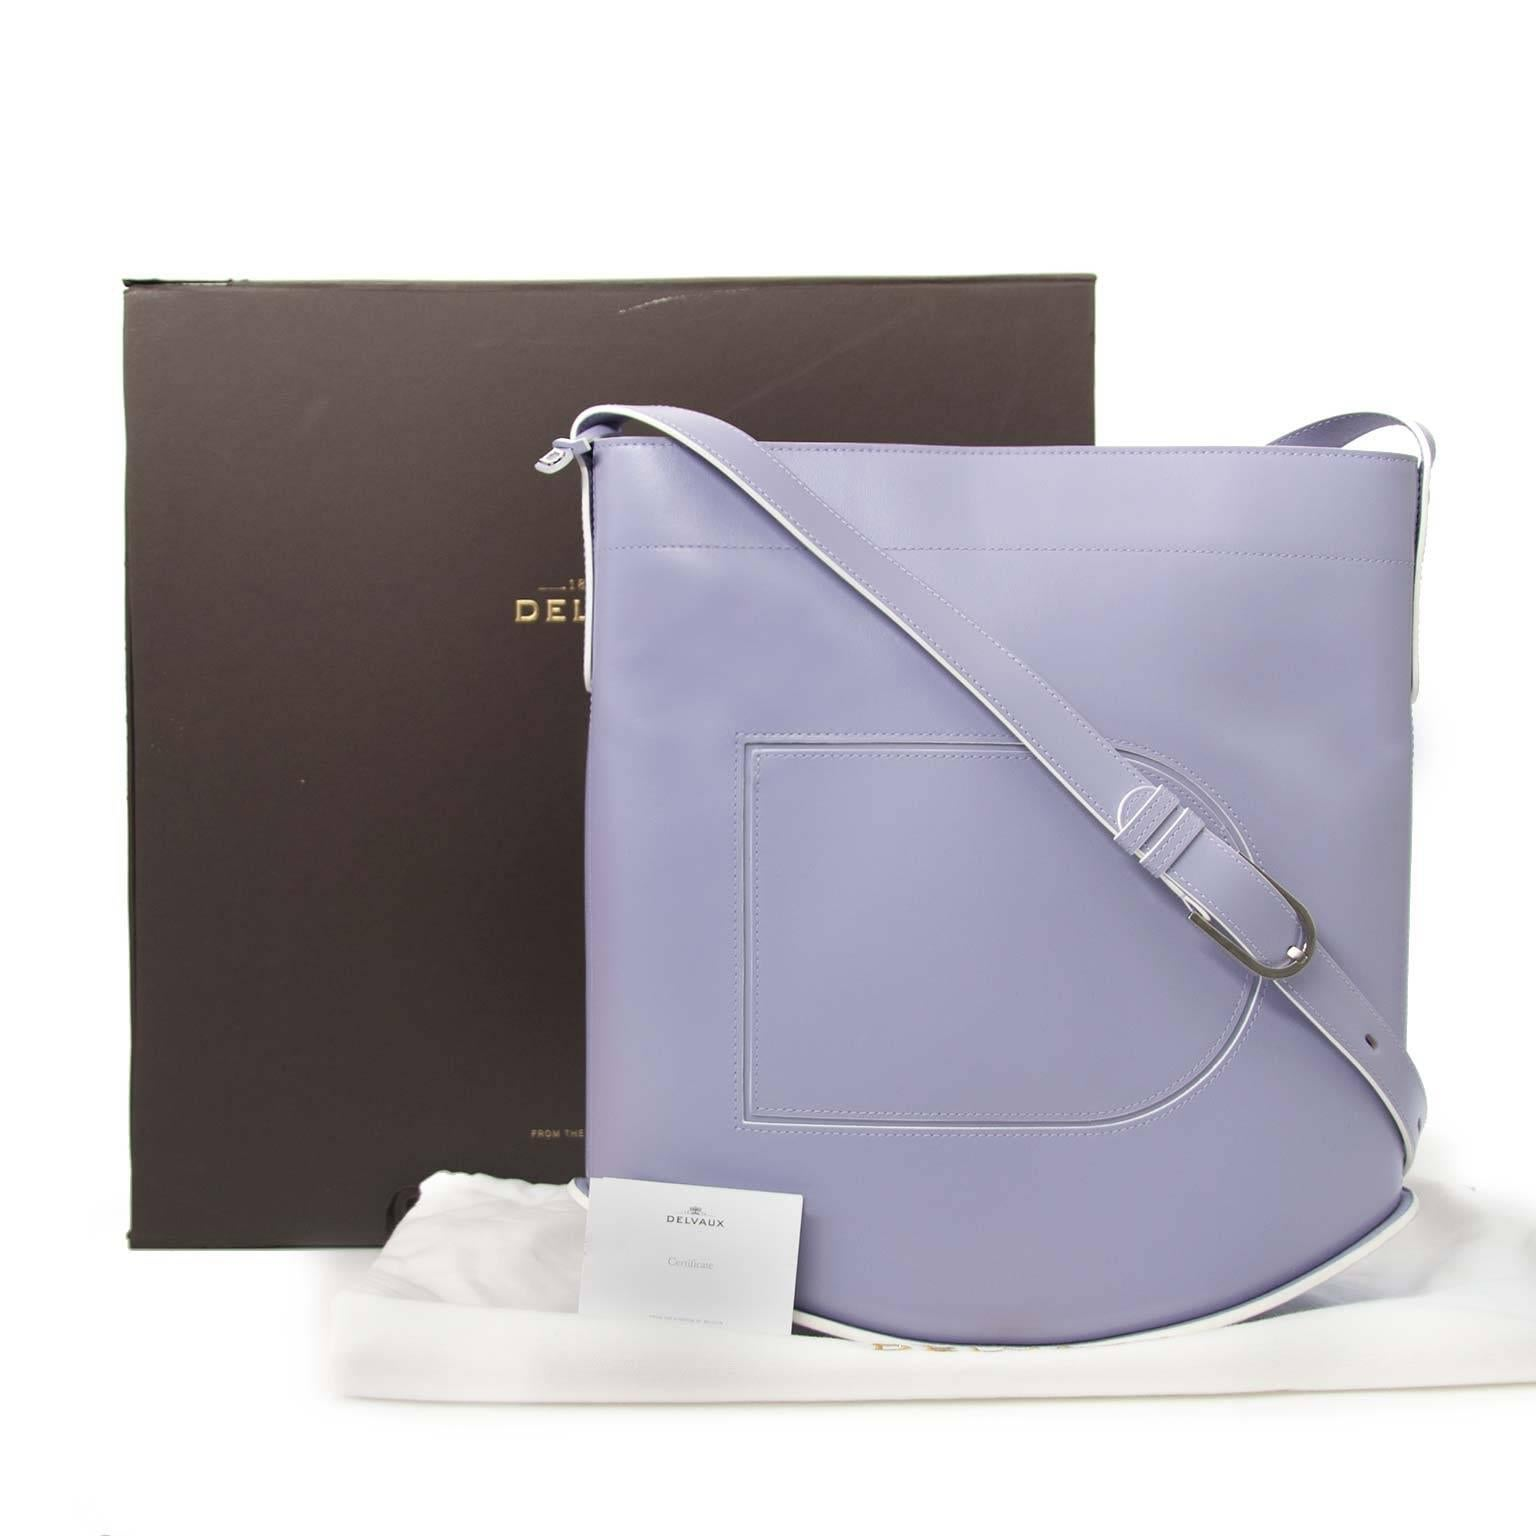 96e0c1bc24 Delvaux Lila Le Pin Box Calf Leather Shoulder Bag For Sale at 1stdibs